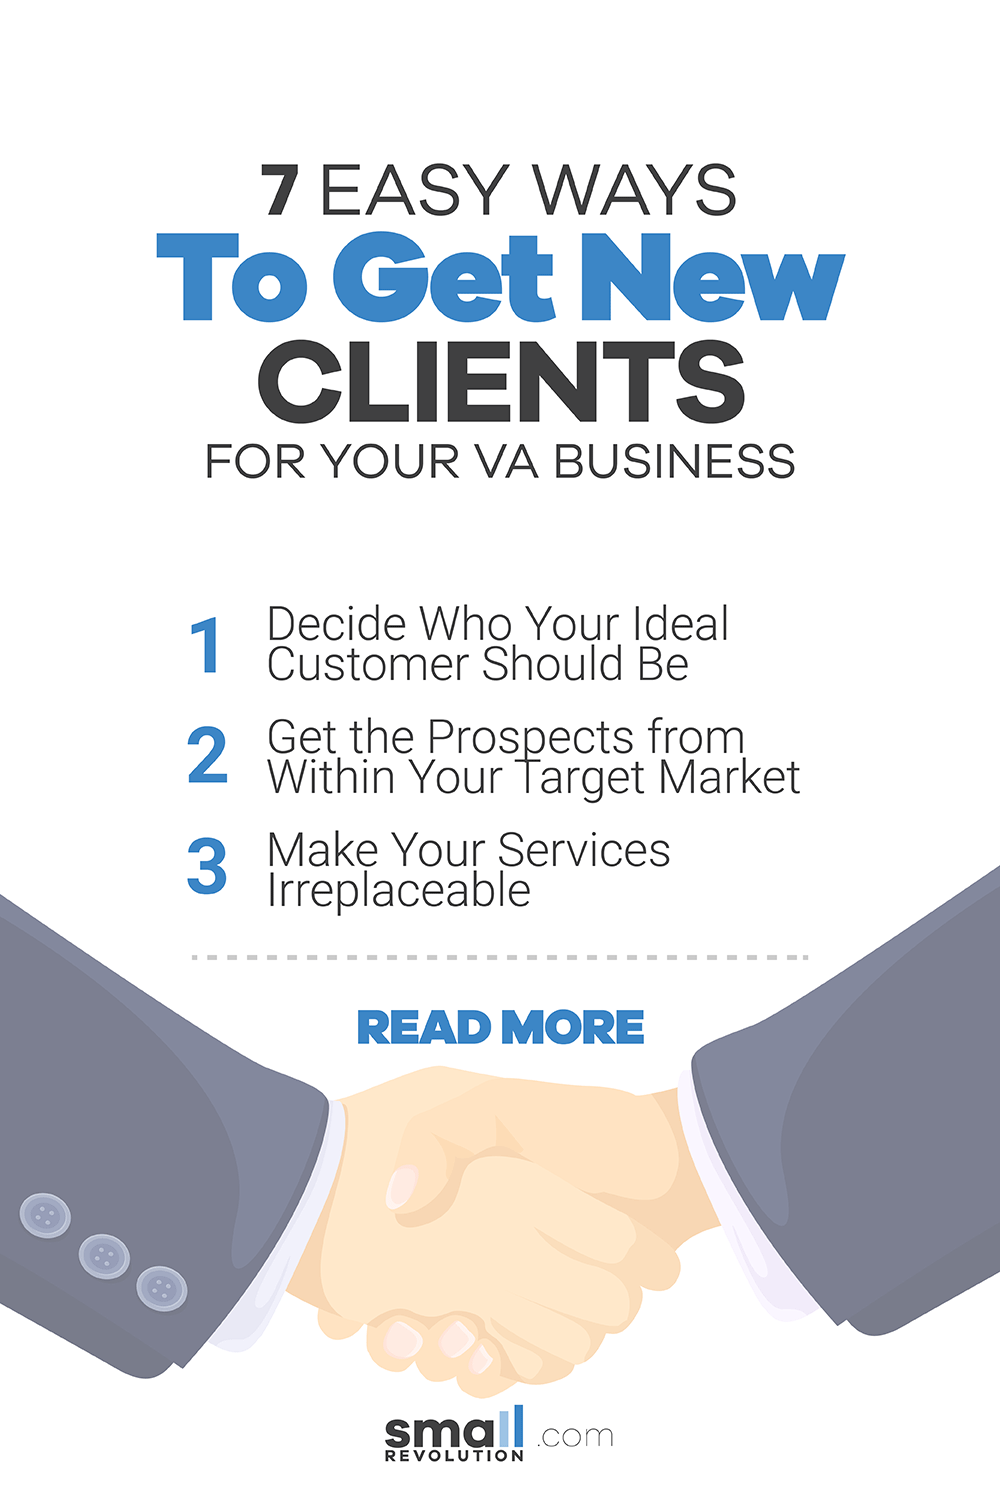 7 easy ways to get new clients for your VA business